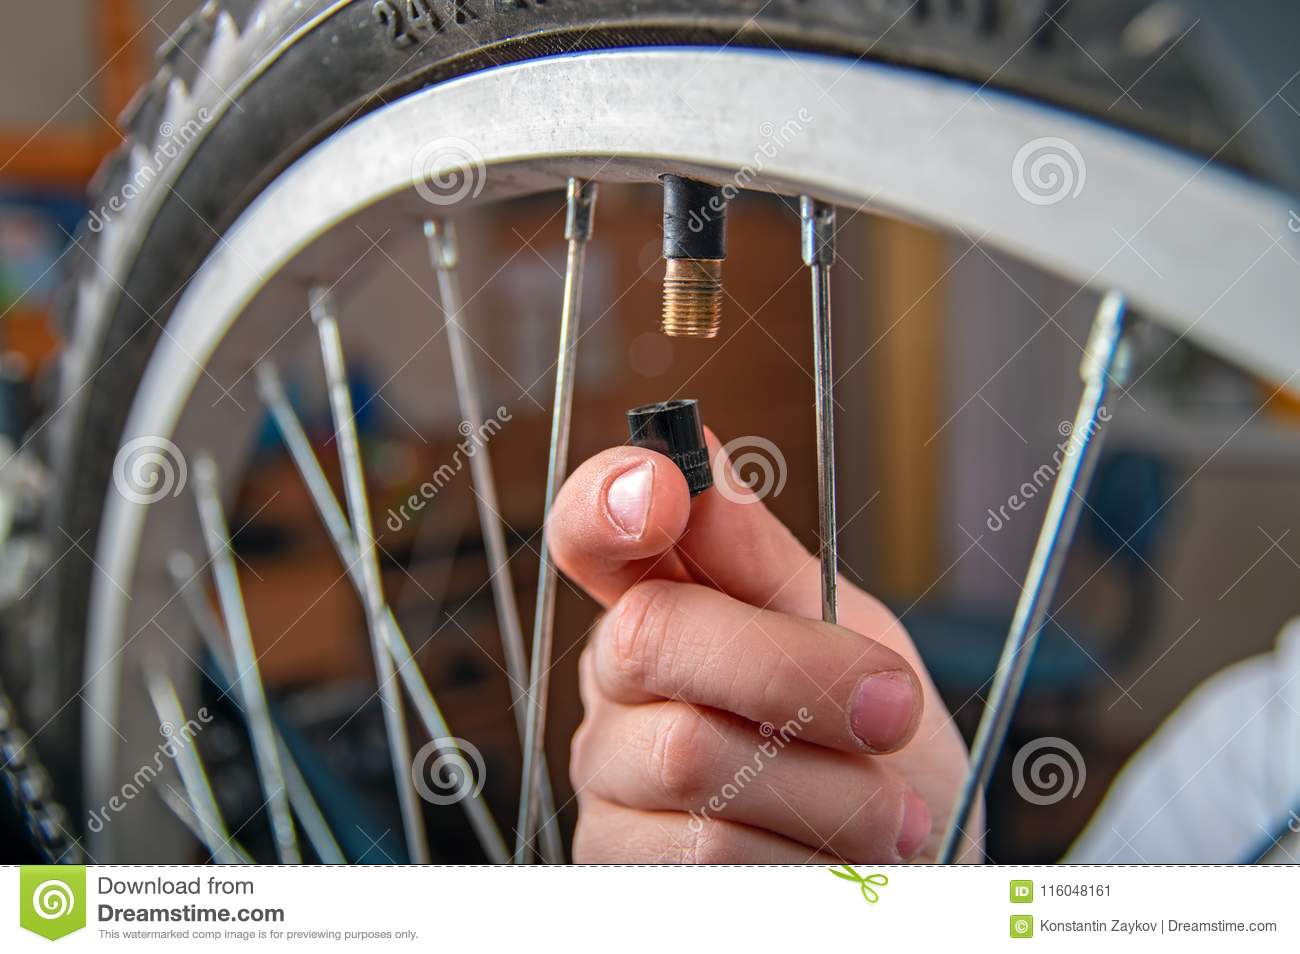 Close-up of child`s hand with cap for bicycle wheel nipple. Pumping tires bike.